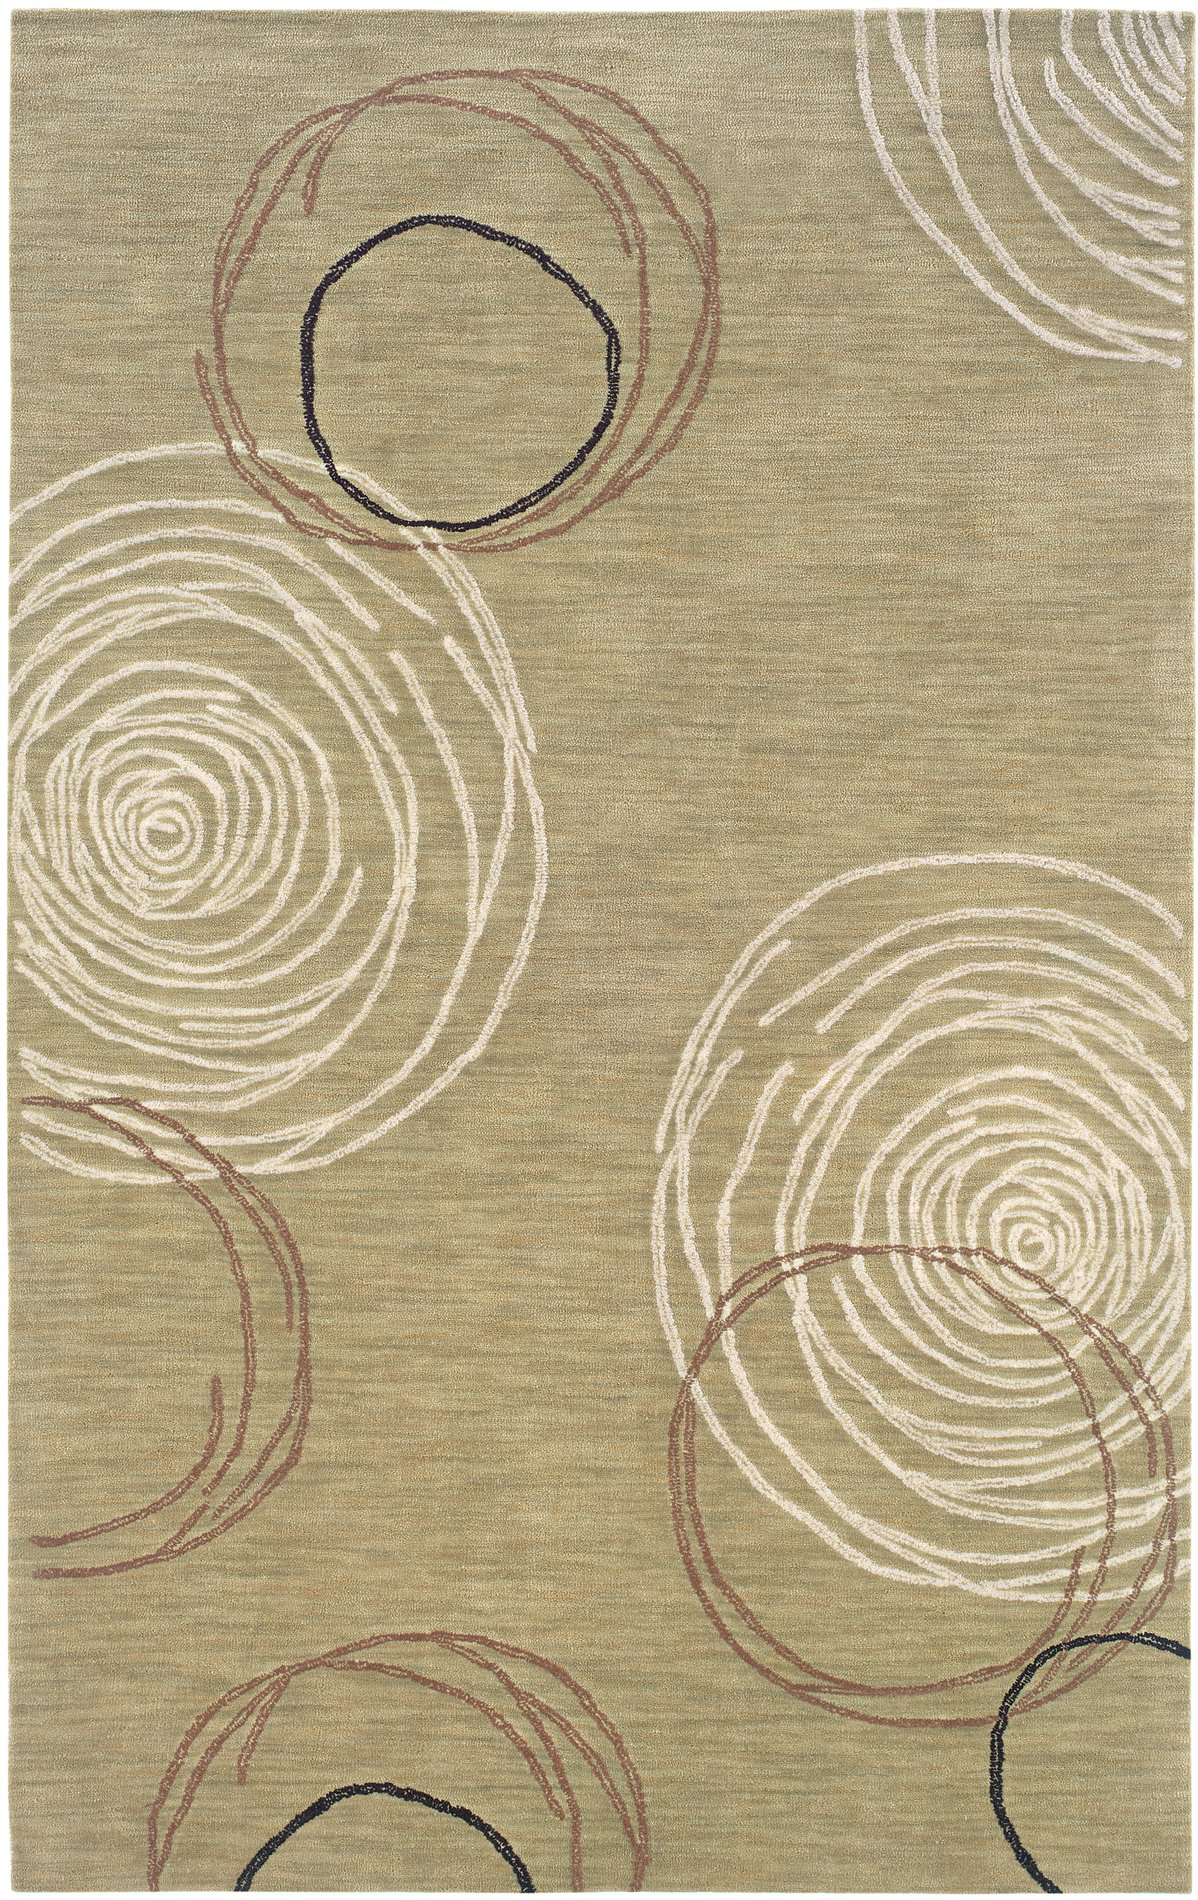 Sphinx L85404 Lotus Beige Modern Contemporary Rug Spx 85404